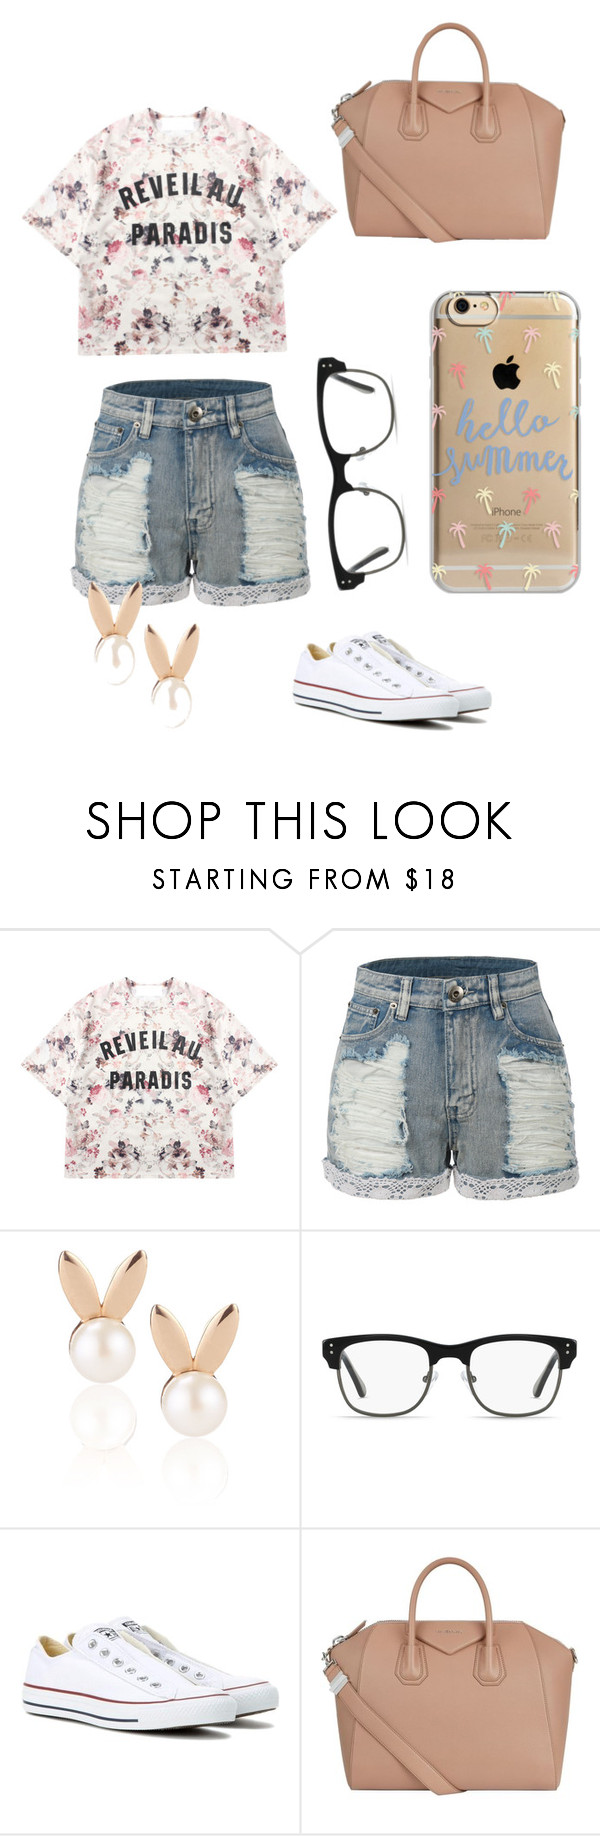 """""""Summer Days"""" by divergent-dino on Polyvore featuring Momewear, LE3NO, Aamaya by priyanka, GlassesUSA, Converse, Givenchy, Agent 18, Summer, summerstyle and summer2016"""